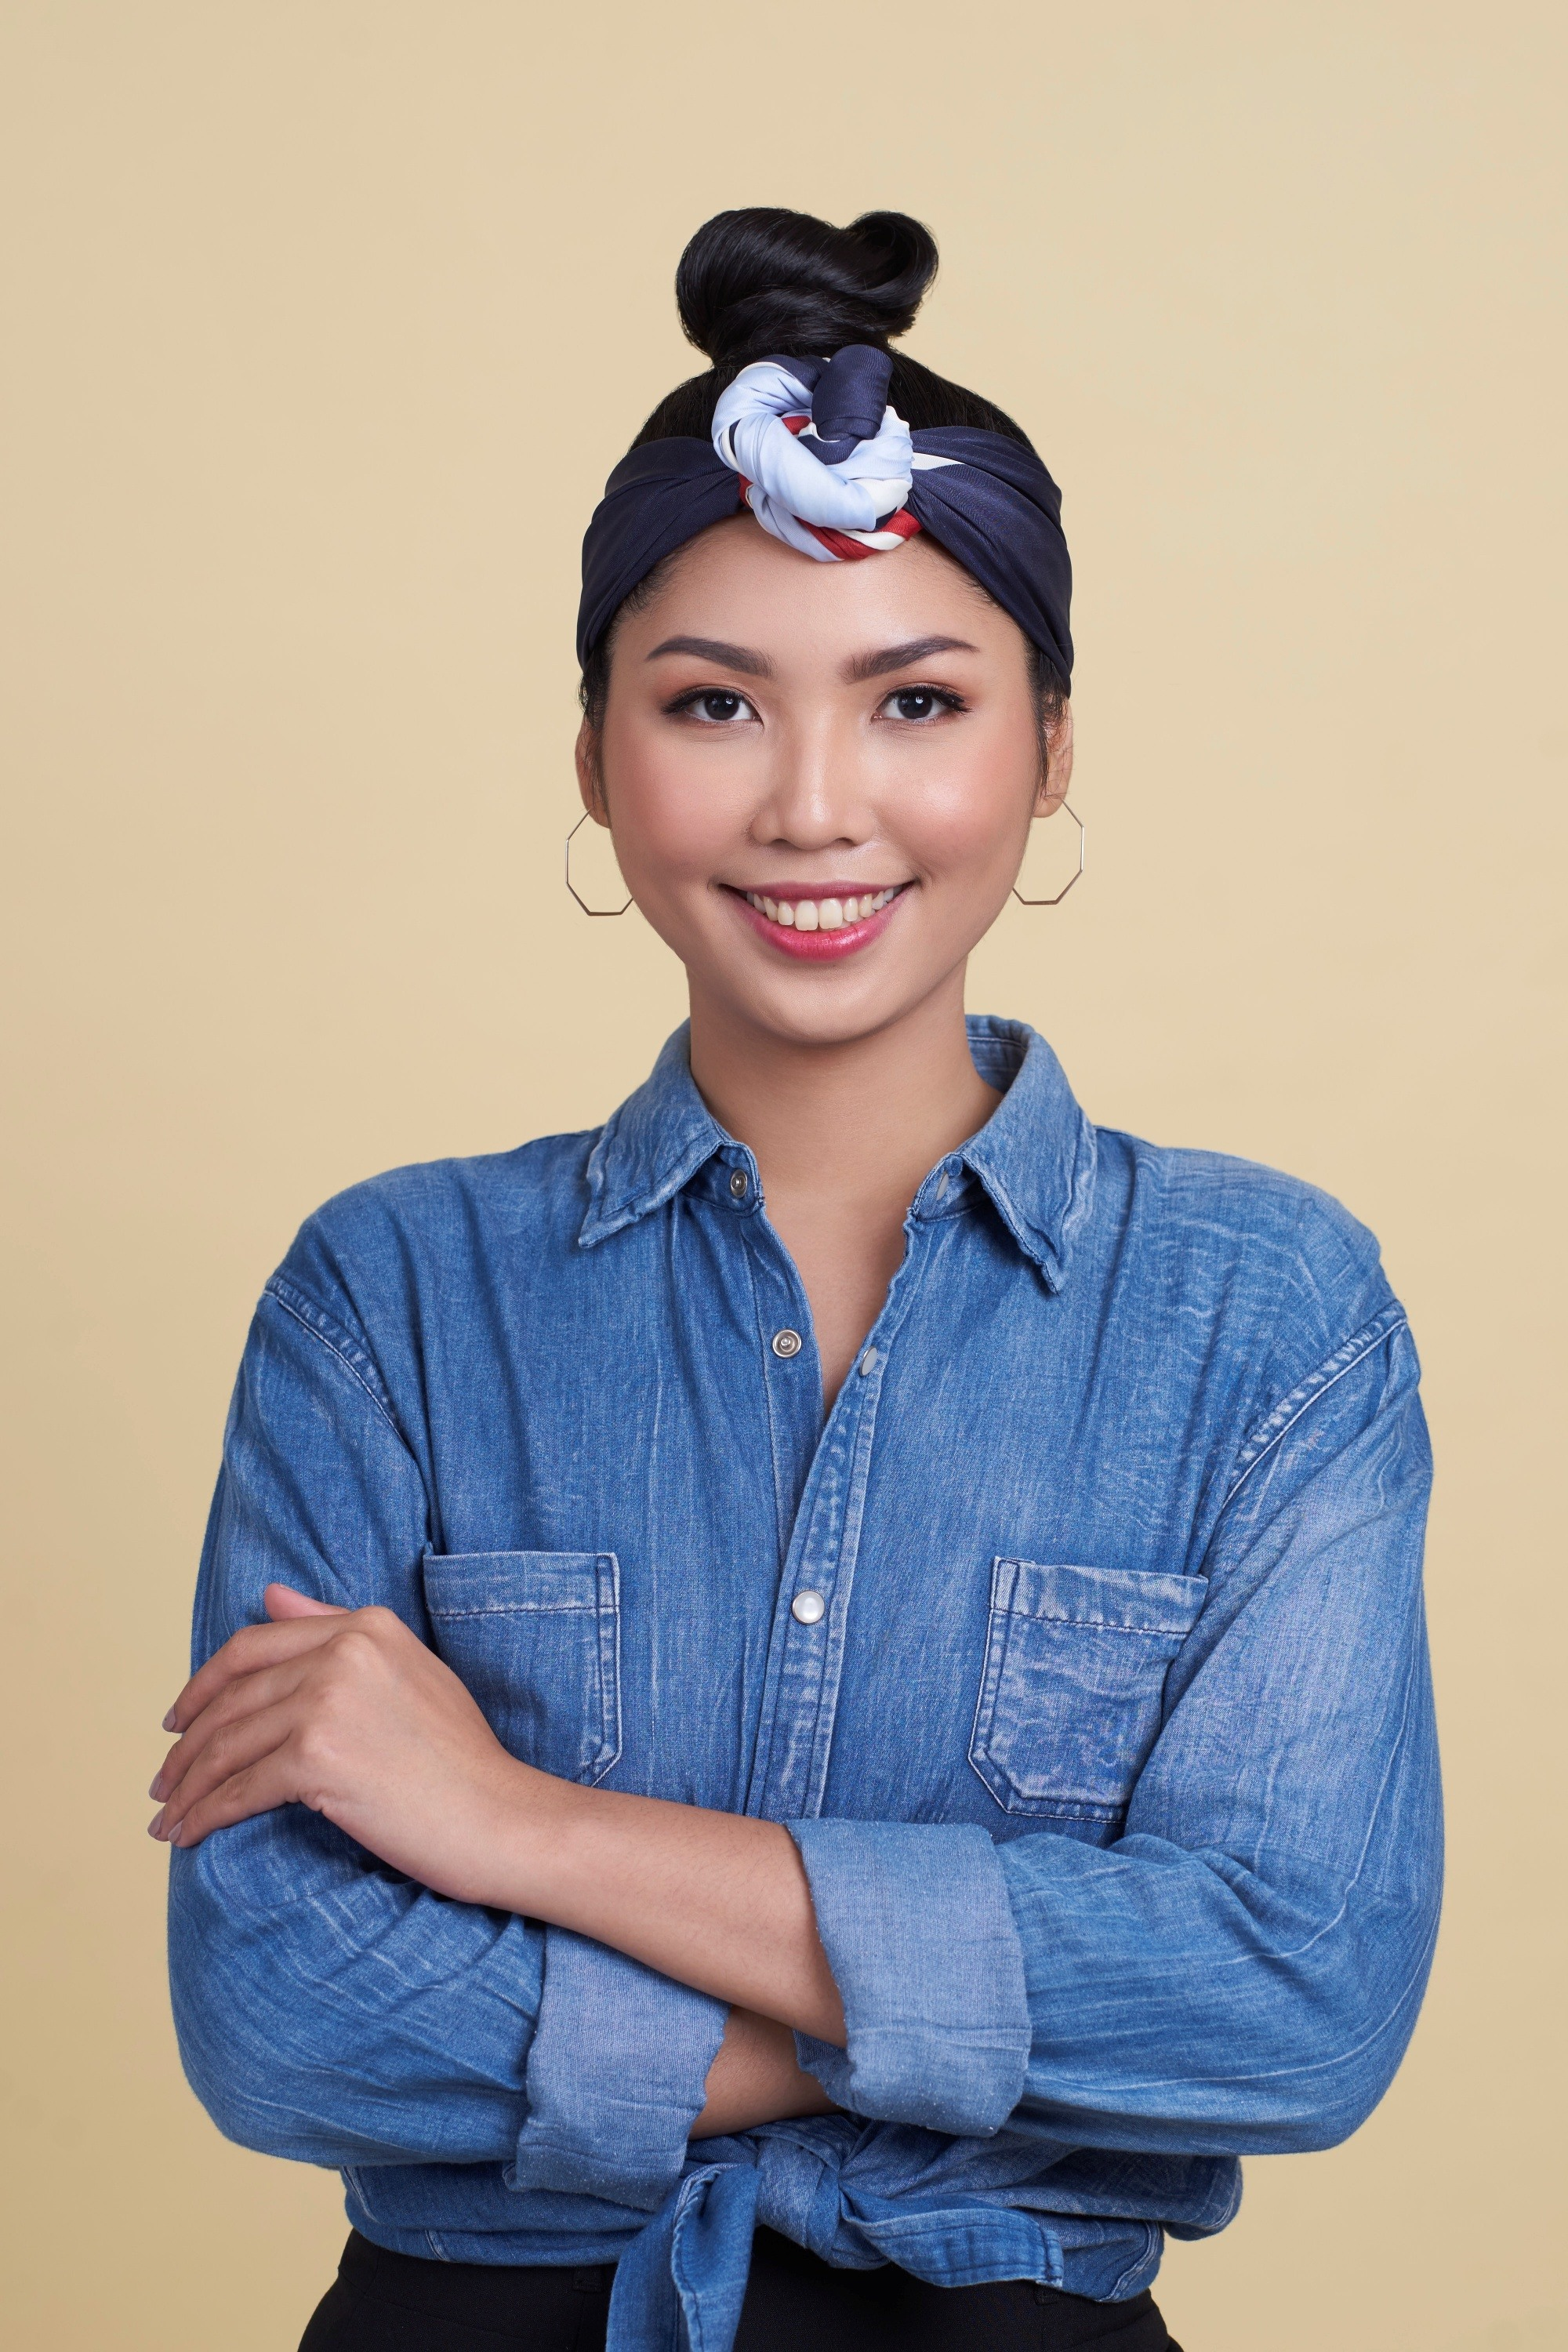 Headband hairstyles: Asian woman with long black hair in a top bun wearing a headband and a denim blouse